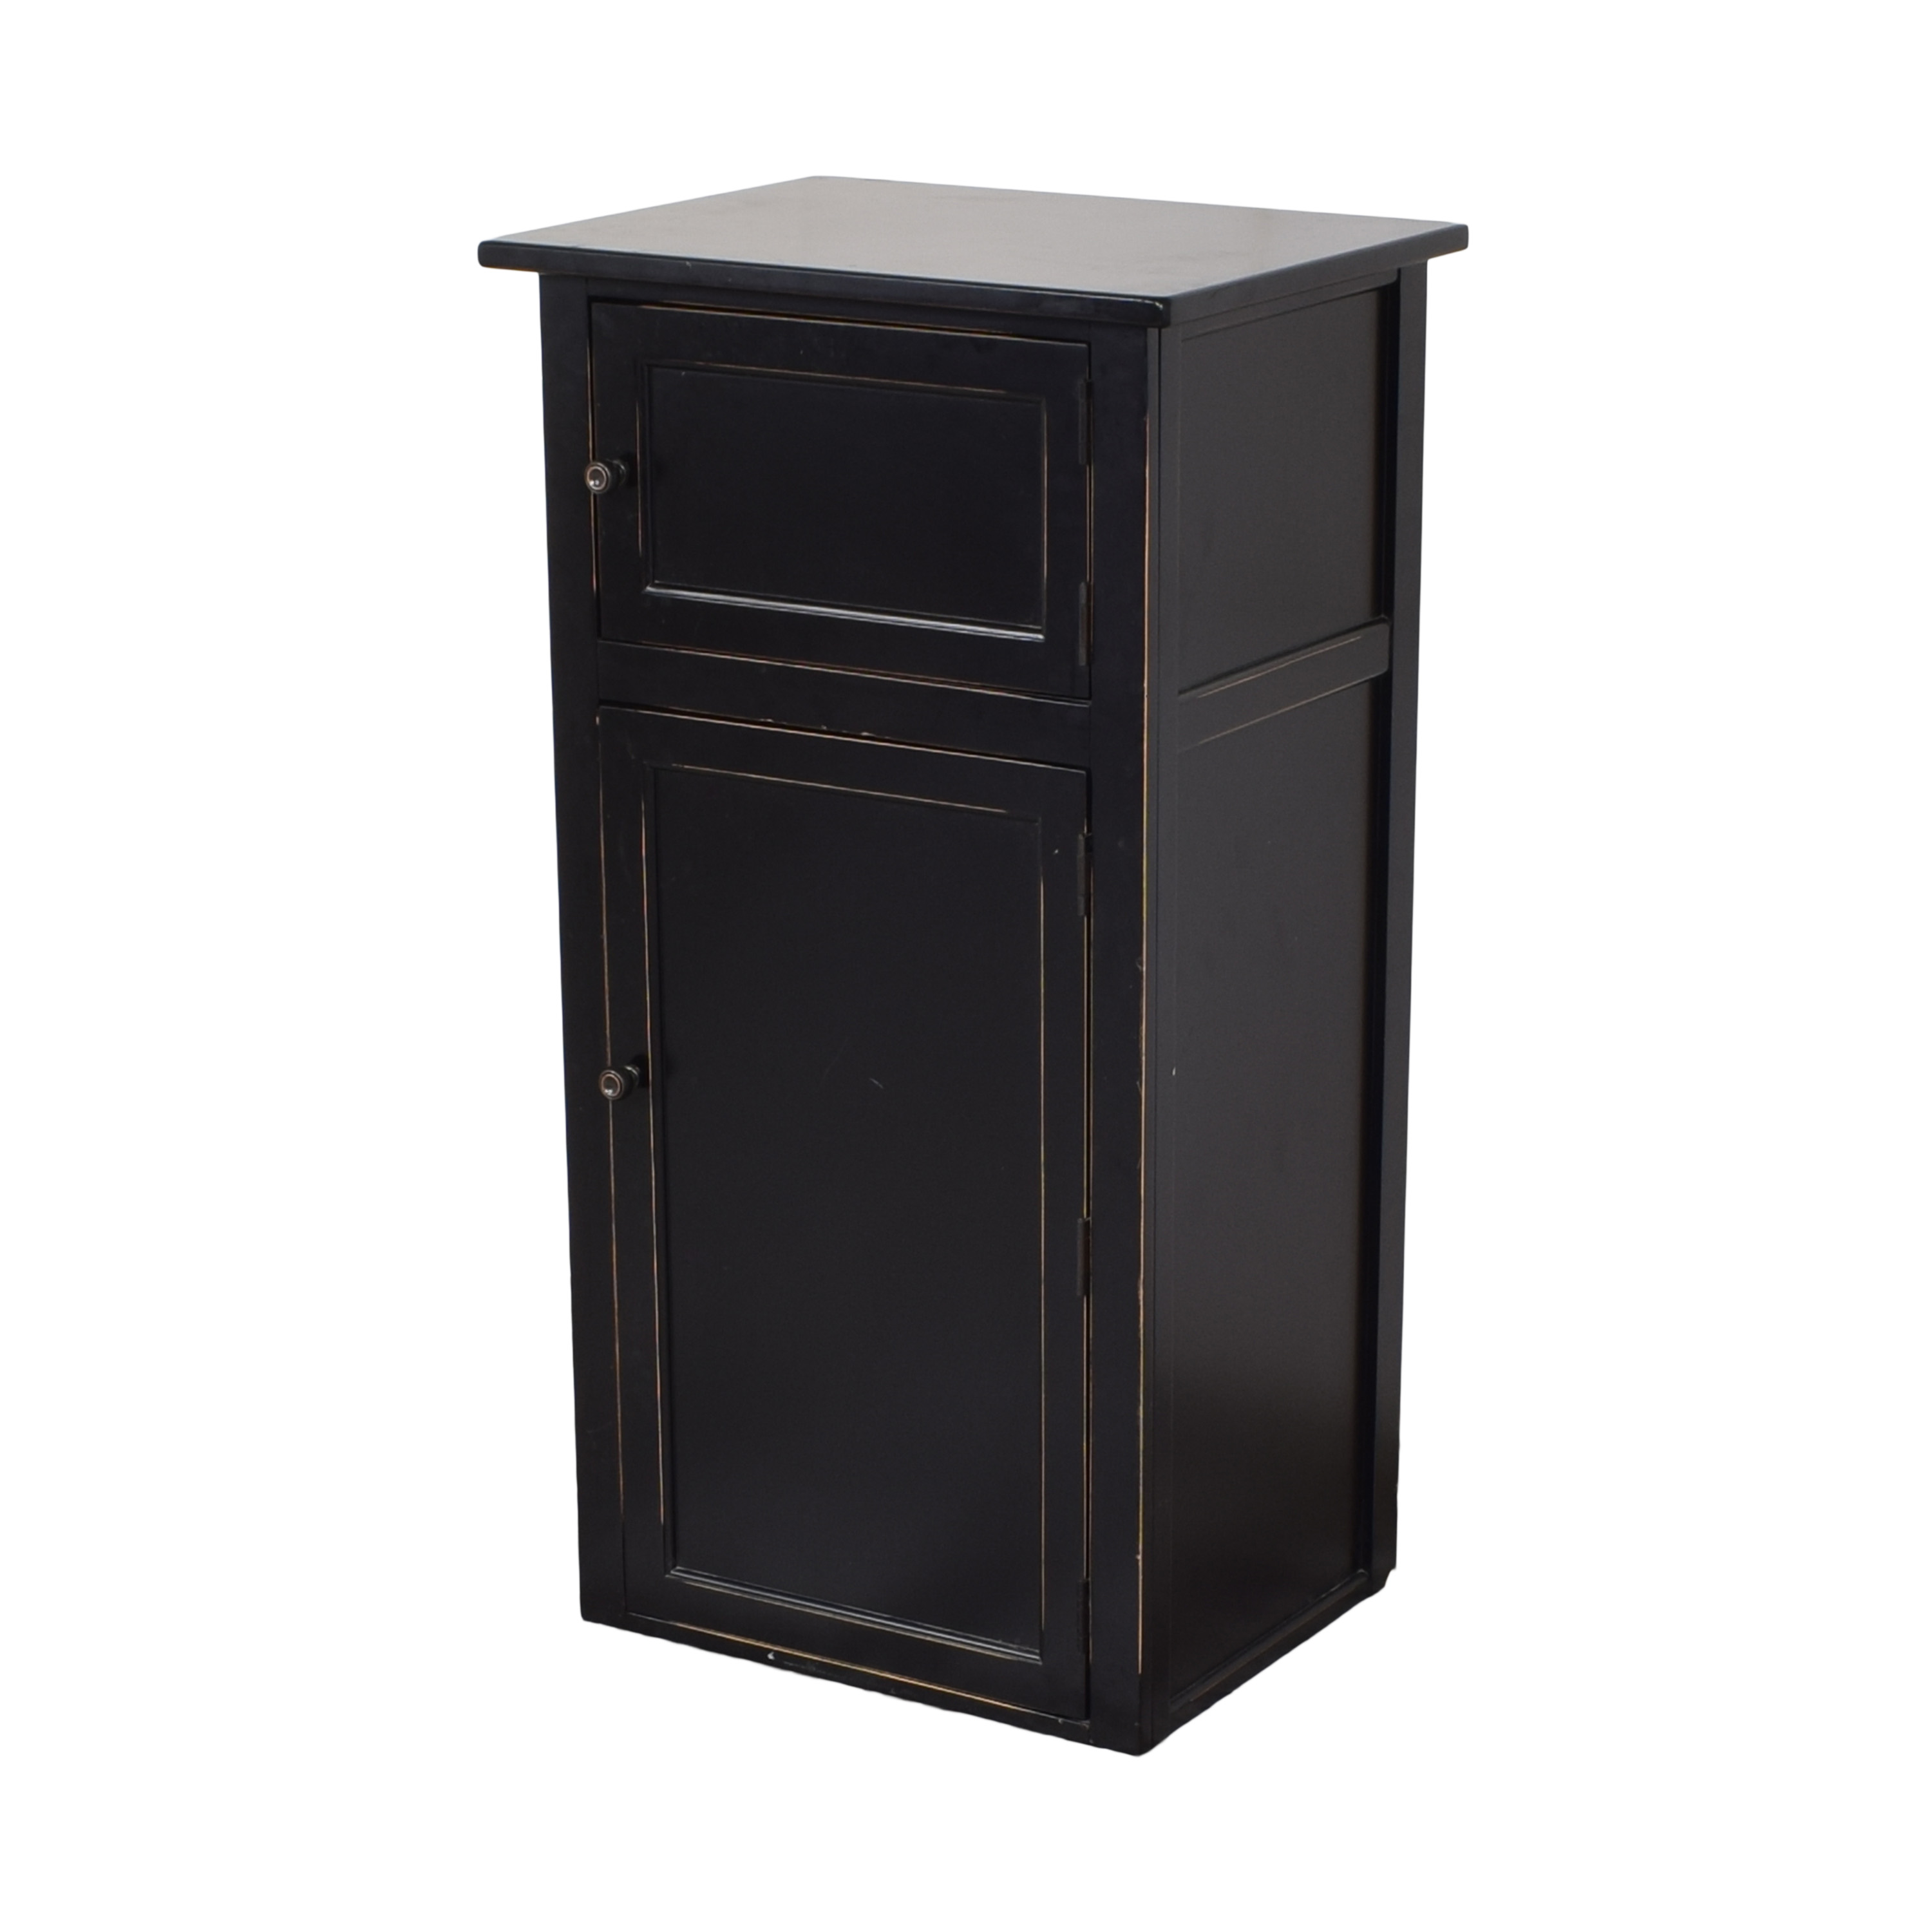 Crate & Barrel Crate & Barrel Two Door Cabinet ma